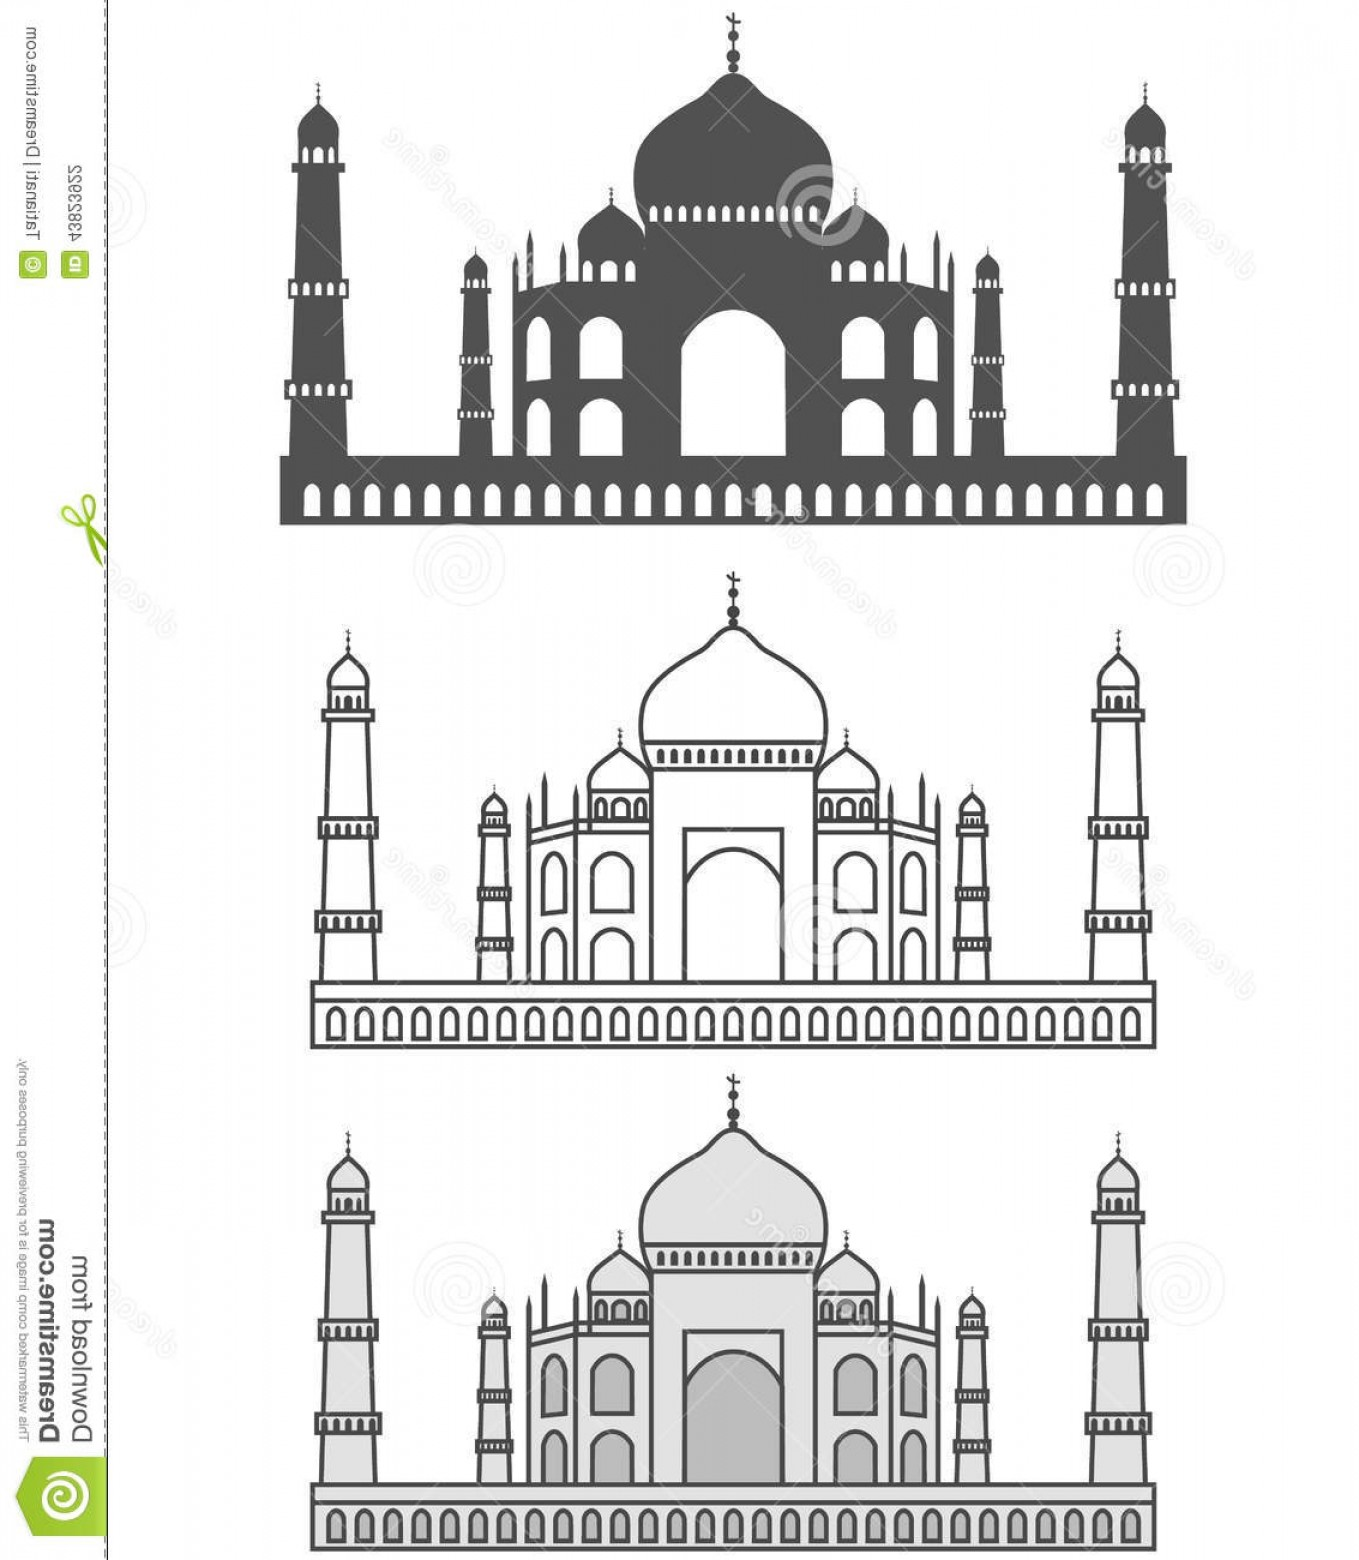 Taj Mahal Vector: Stock Illustration Taj Mahal Vector Illustration Silhouette Image